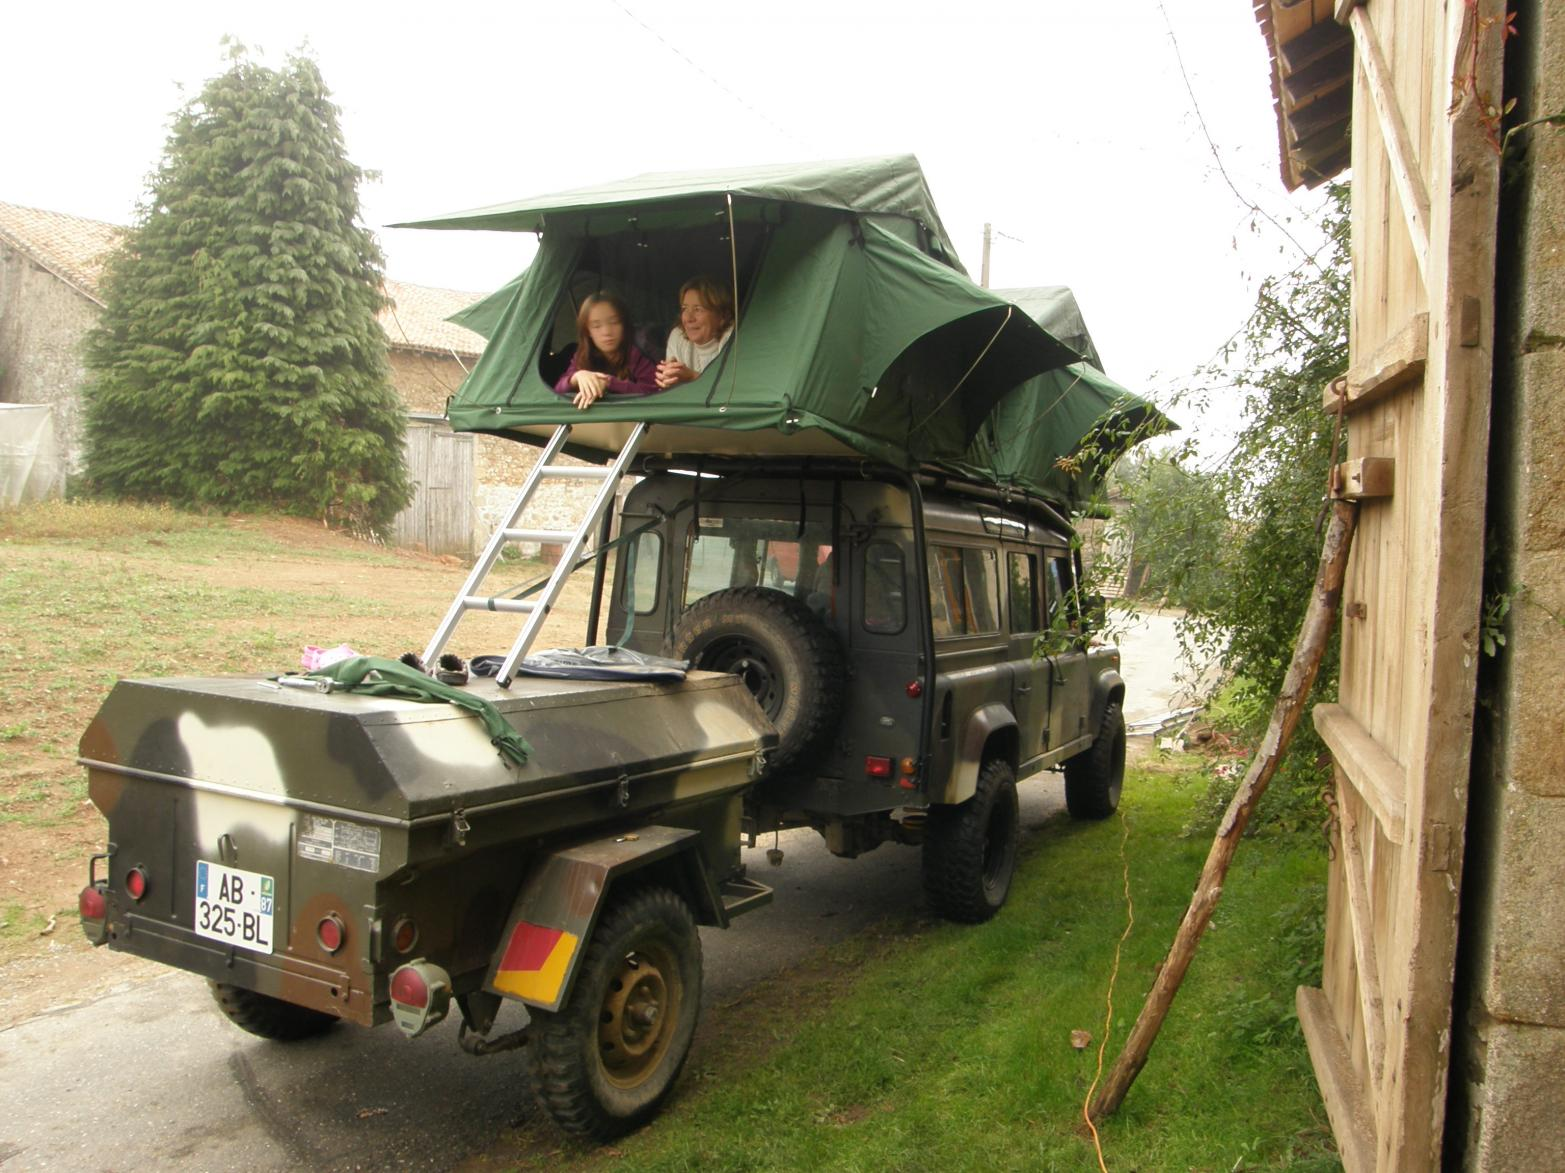 roof top tents 006.jpg & Roof top tents | LandyZone - Land Rover Forum